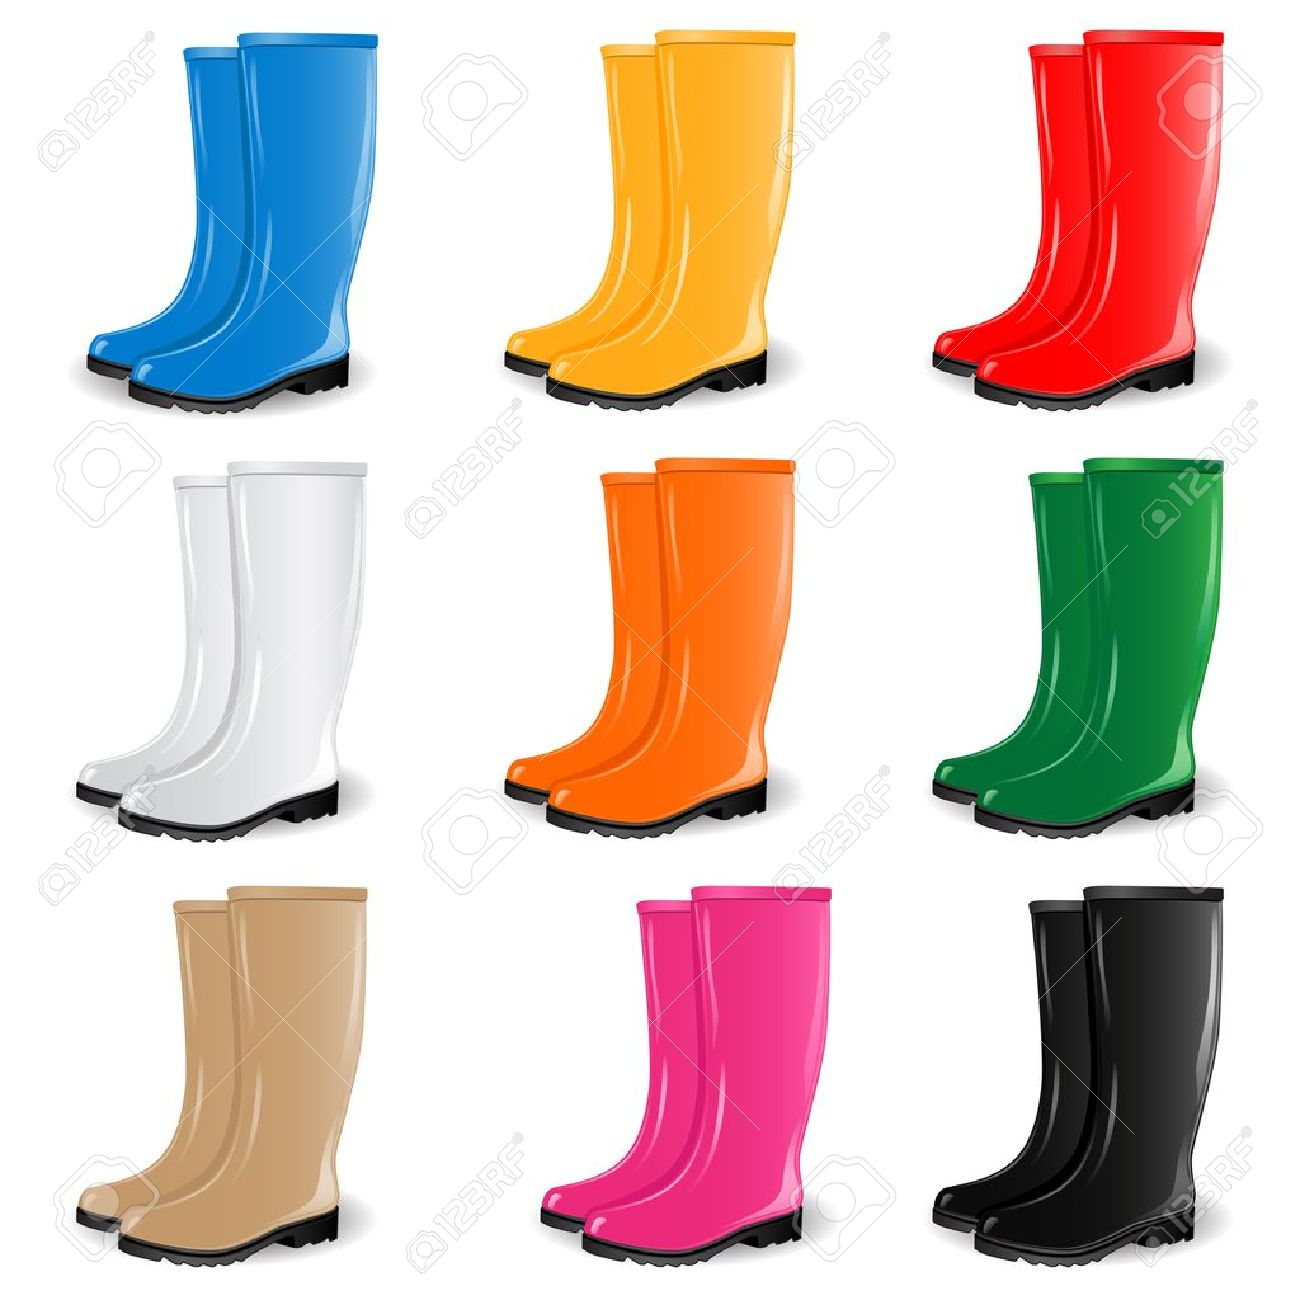 126 Rainboots Cliparts, Stock Vector And Royalty Free Rainboots ...